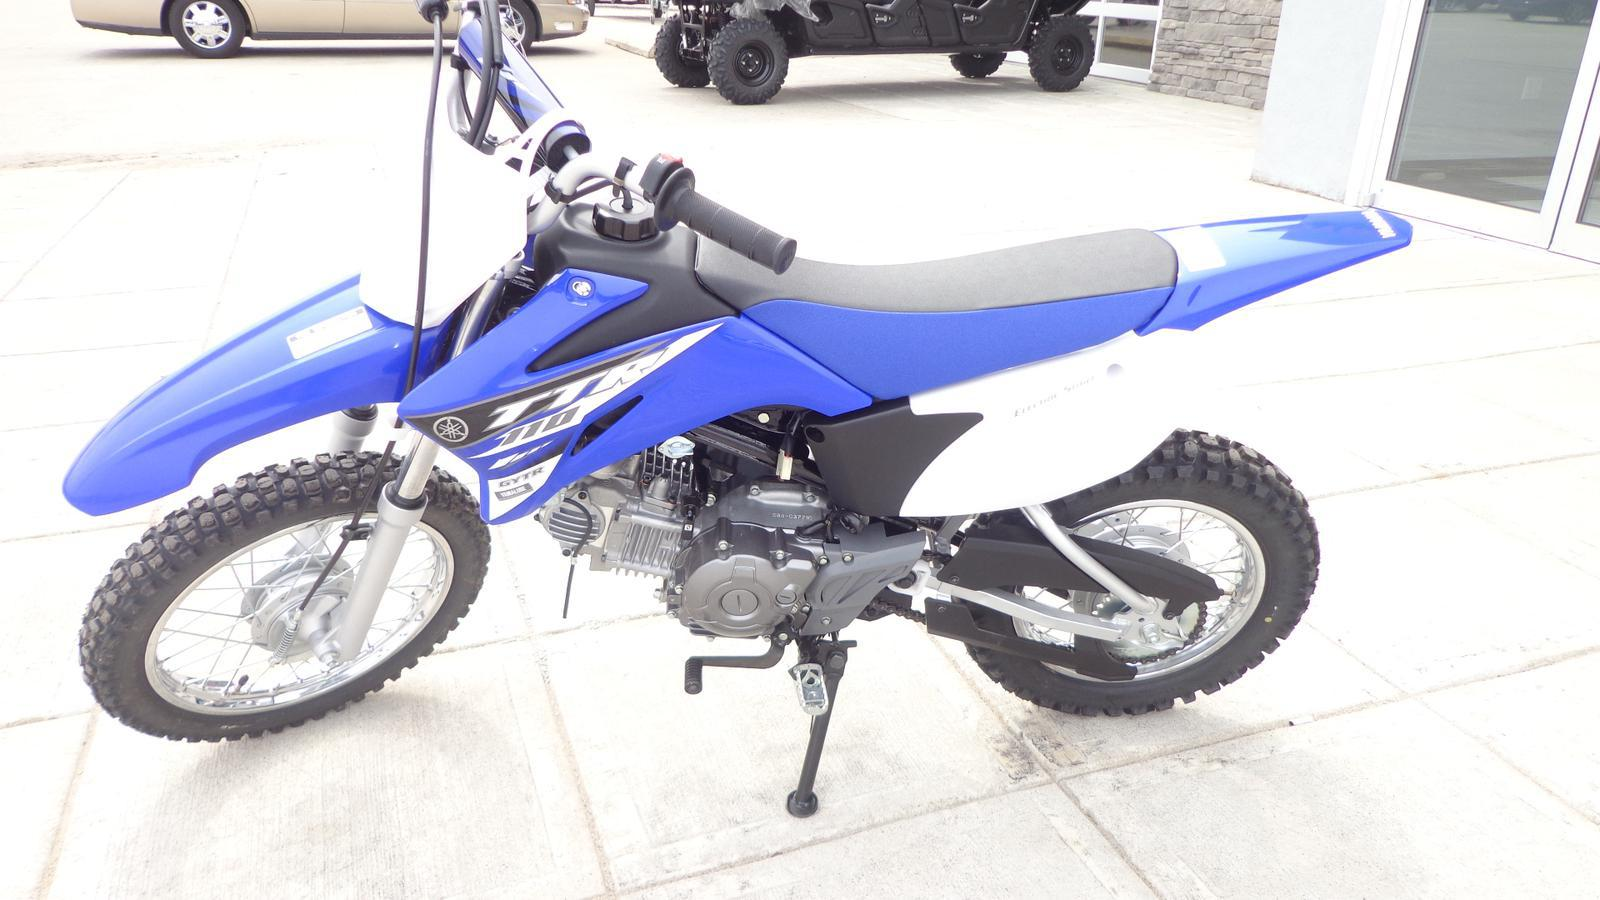 2016 Yamaha TTR 110 for sale in Morehead, KY | CAVE RUN MOTORSPORTS ...